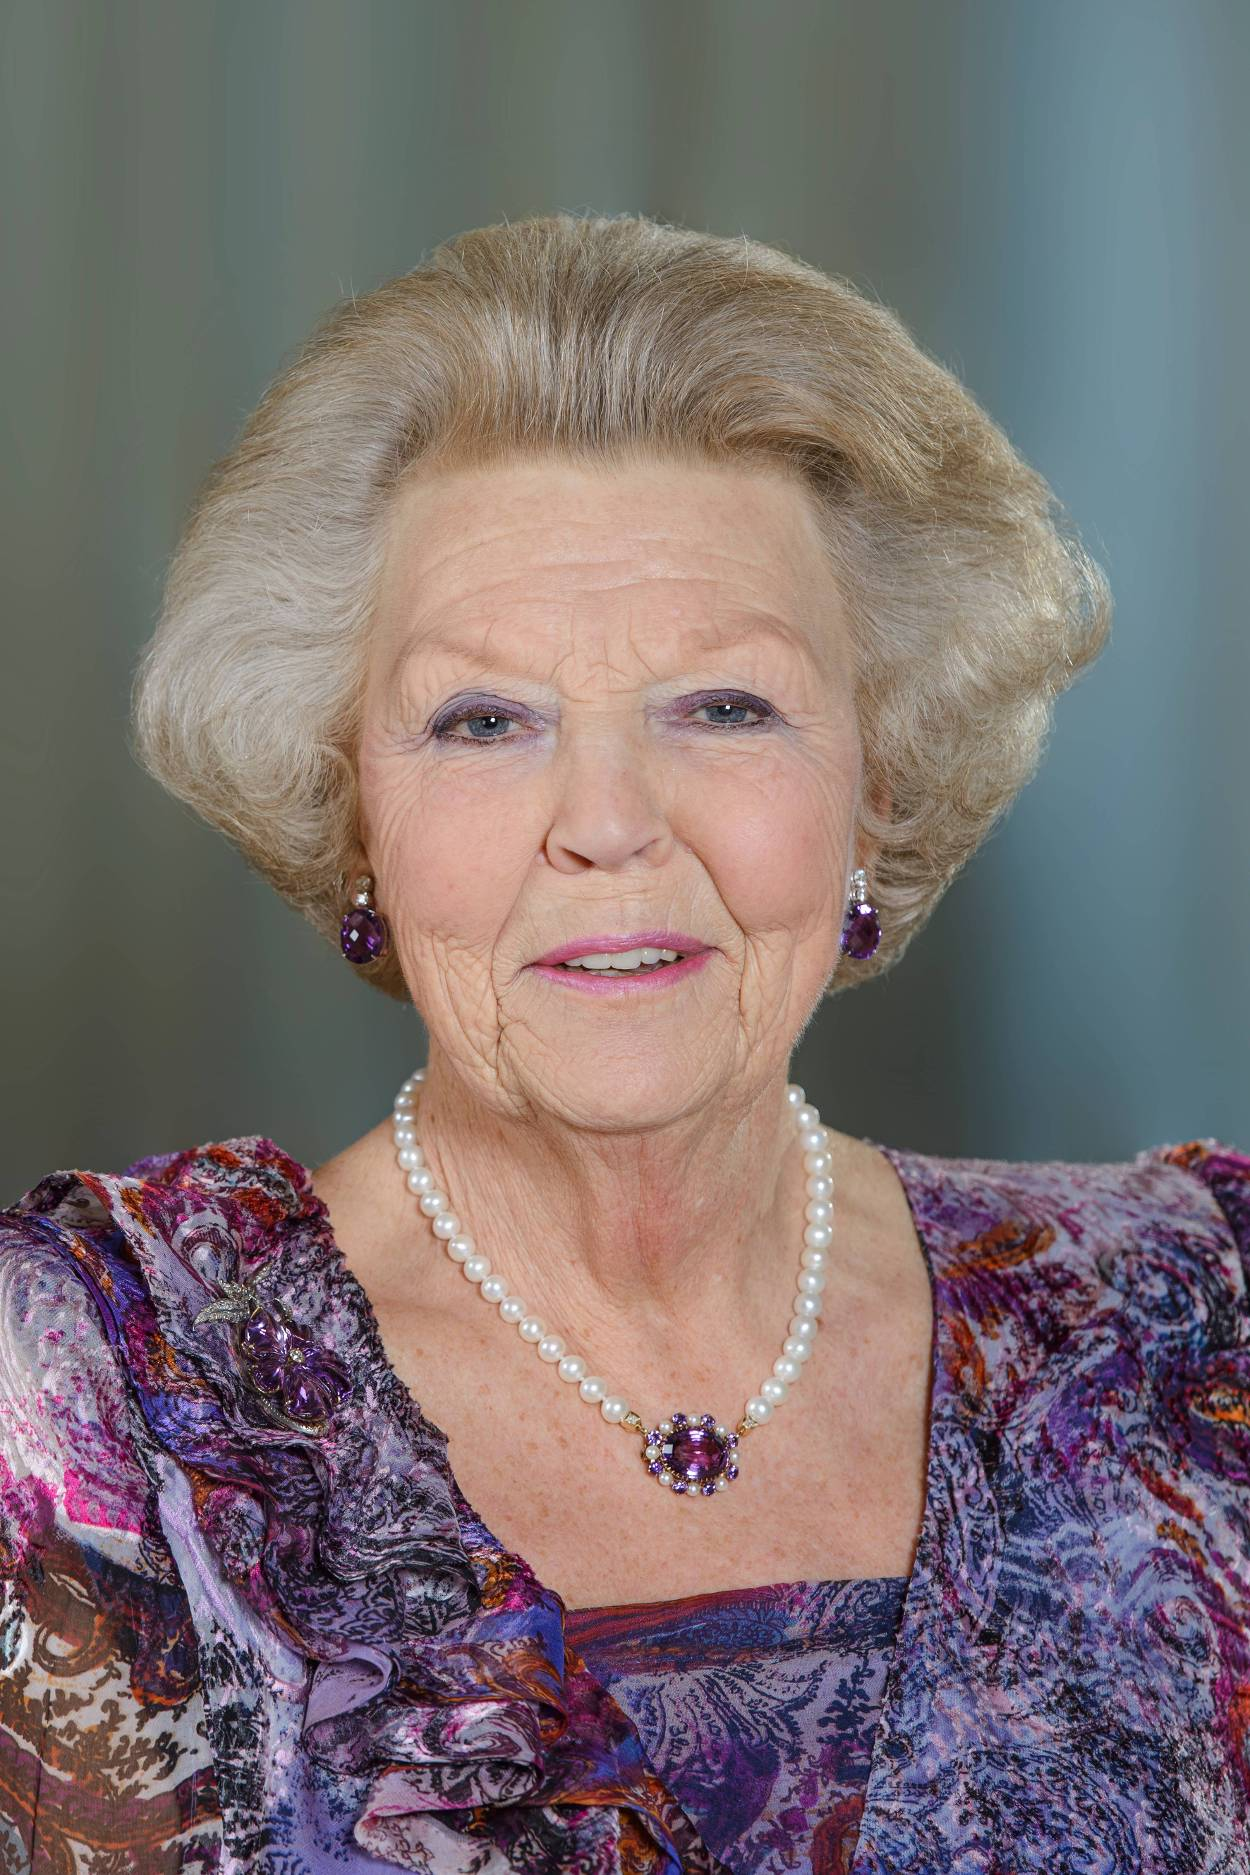 Princess Beatrix - Beatrix Wilhelmina Armgard was born to then Princess Juliana and Prince Bernhard of the Netherlands on January 31, 1938, in Soestdijk Palace. She has three sisters: Princesses Irene, Margriet and Christina.She studied at Leiden University and with European and international organisations before earning a law degree in 1961. She married German diplomat Claus von Amsberg on March 10, 1966. They had three sons: King Willem-Alexander, Prince Friso and Prince Constantijn.She became Queen of the Netherlands upon the abdication of her mother on April 30, 1980. She, in turn, abdicated in favor of Willem-Alexander on April, 30, 2013. She reverted back to the title of Princess of the Netherlands upon his ascension.(Photo:Jeroen van der Meyde/RVD)